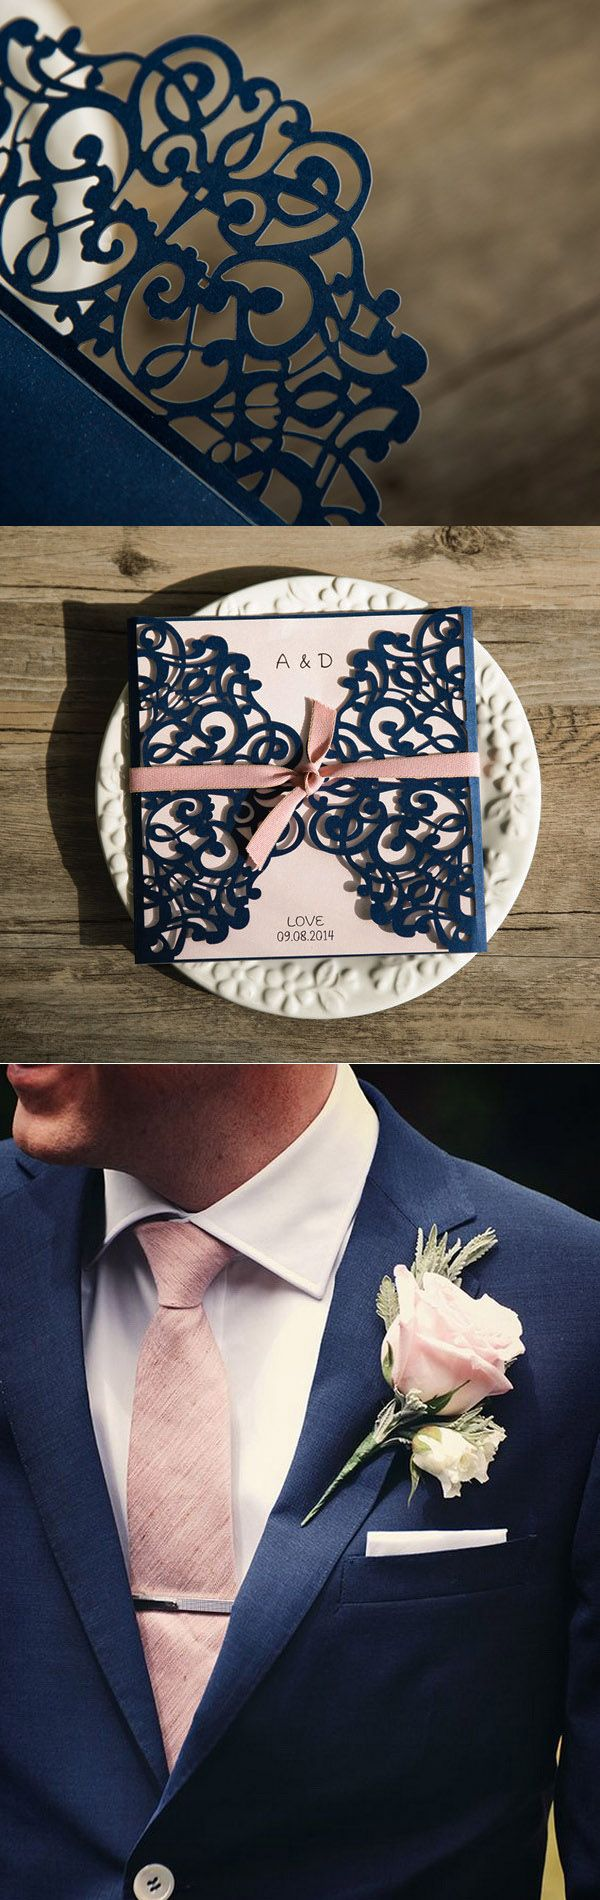 Ever the most blassic blush and navy wedding colors and invitation #weddinginvitations#ElegantWeddingInvites